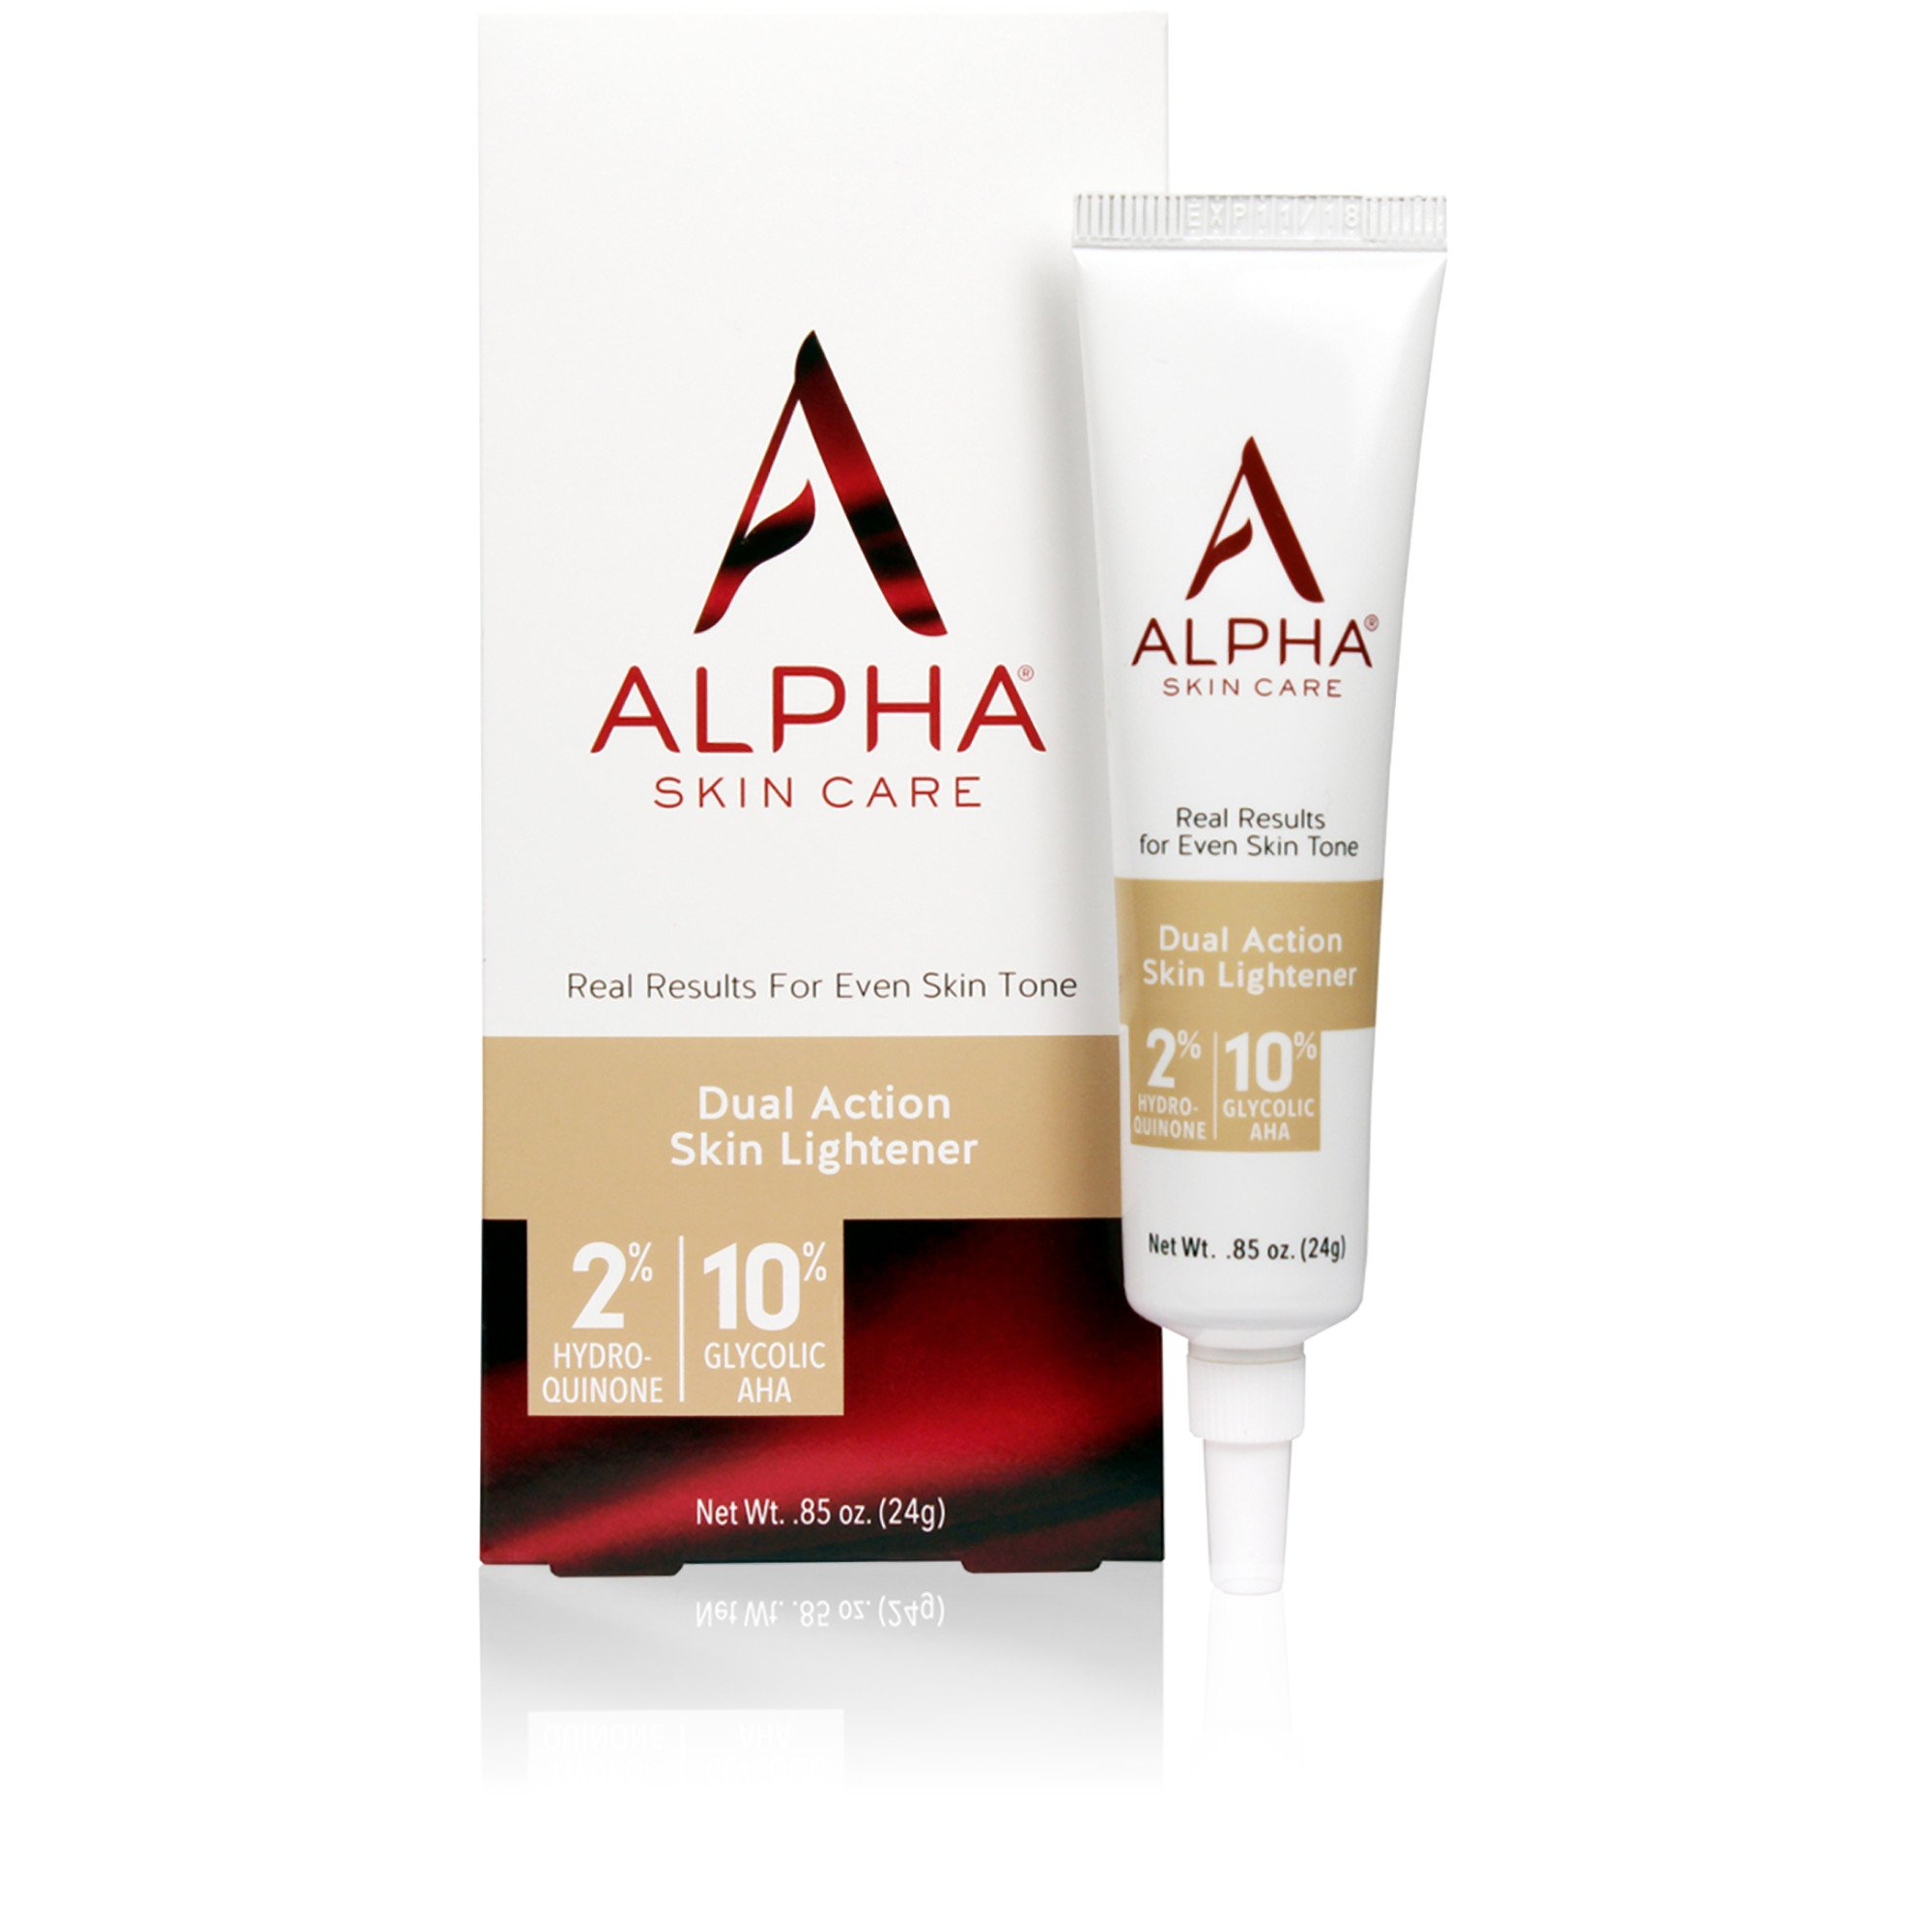 Alpha Skin Care - Dual Action Skin Lightener, 2% Hydroquinone, 10% Gycolic AHA, Real Results for Even Skin Tone| Paraben-Free| 0.85-Ounce by Alpha Skin Care (Image #1)